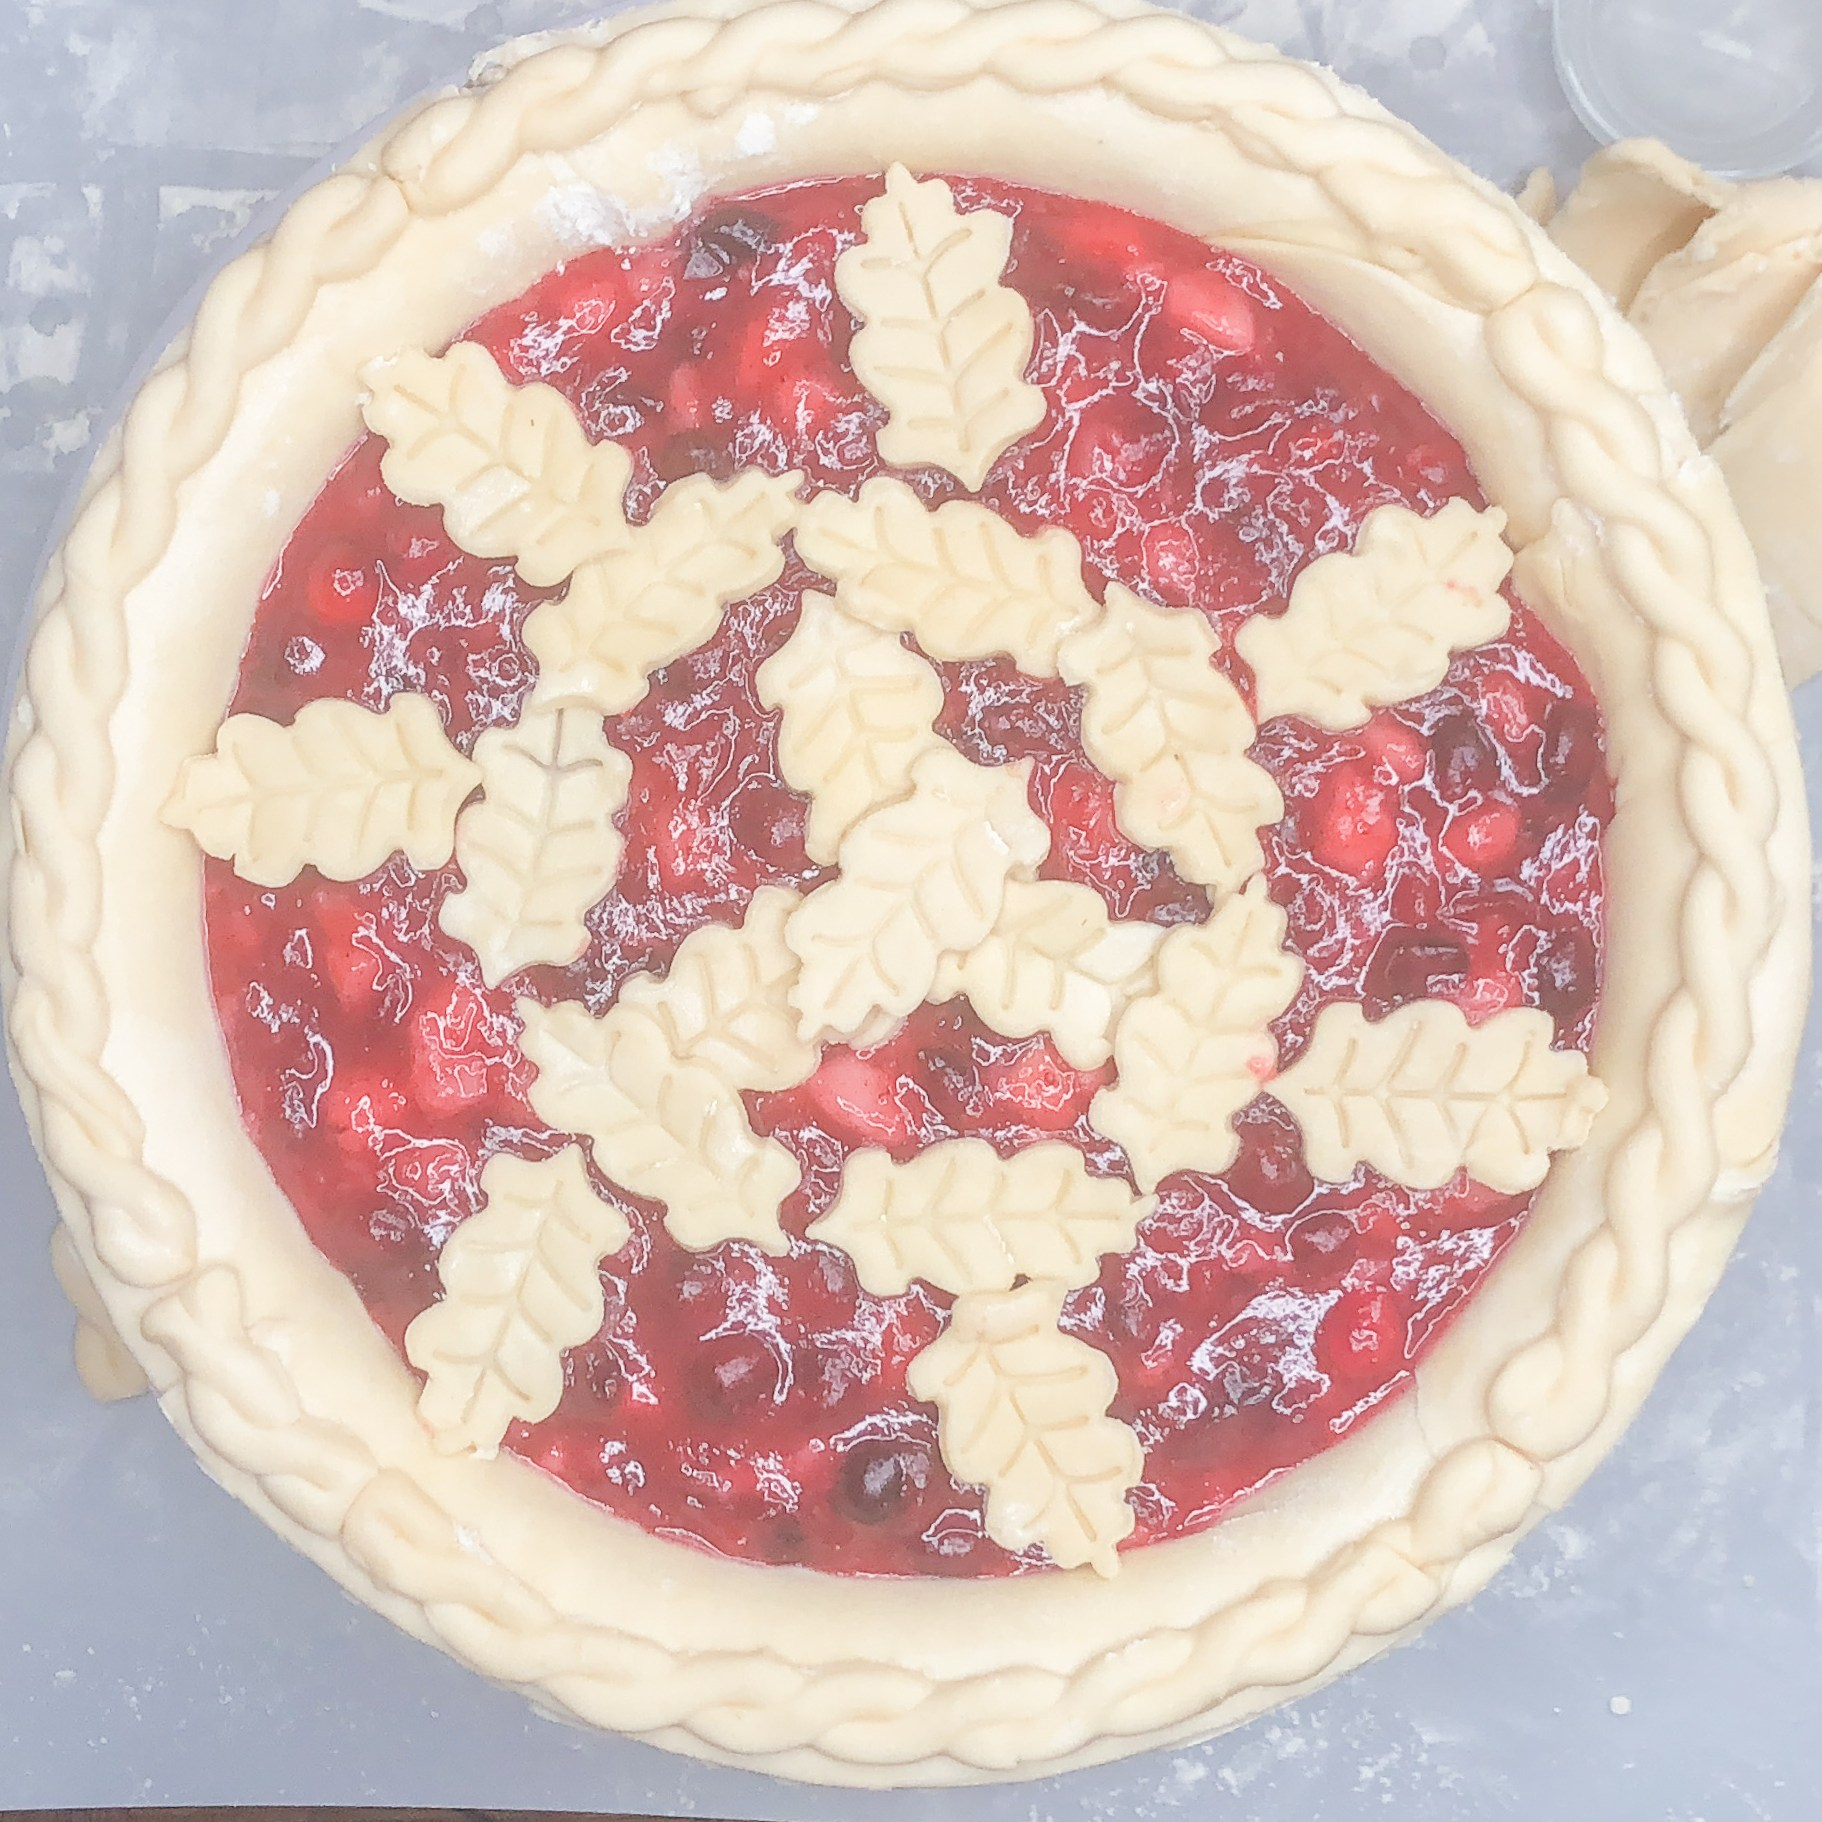 Cranberry-Pear Pie by Candidly Delicious